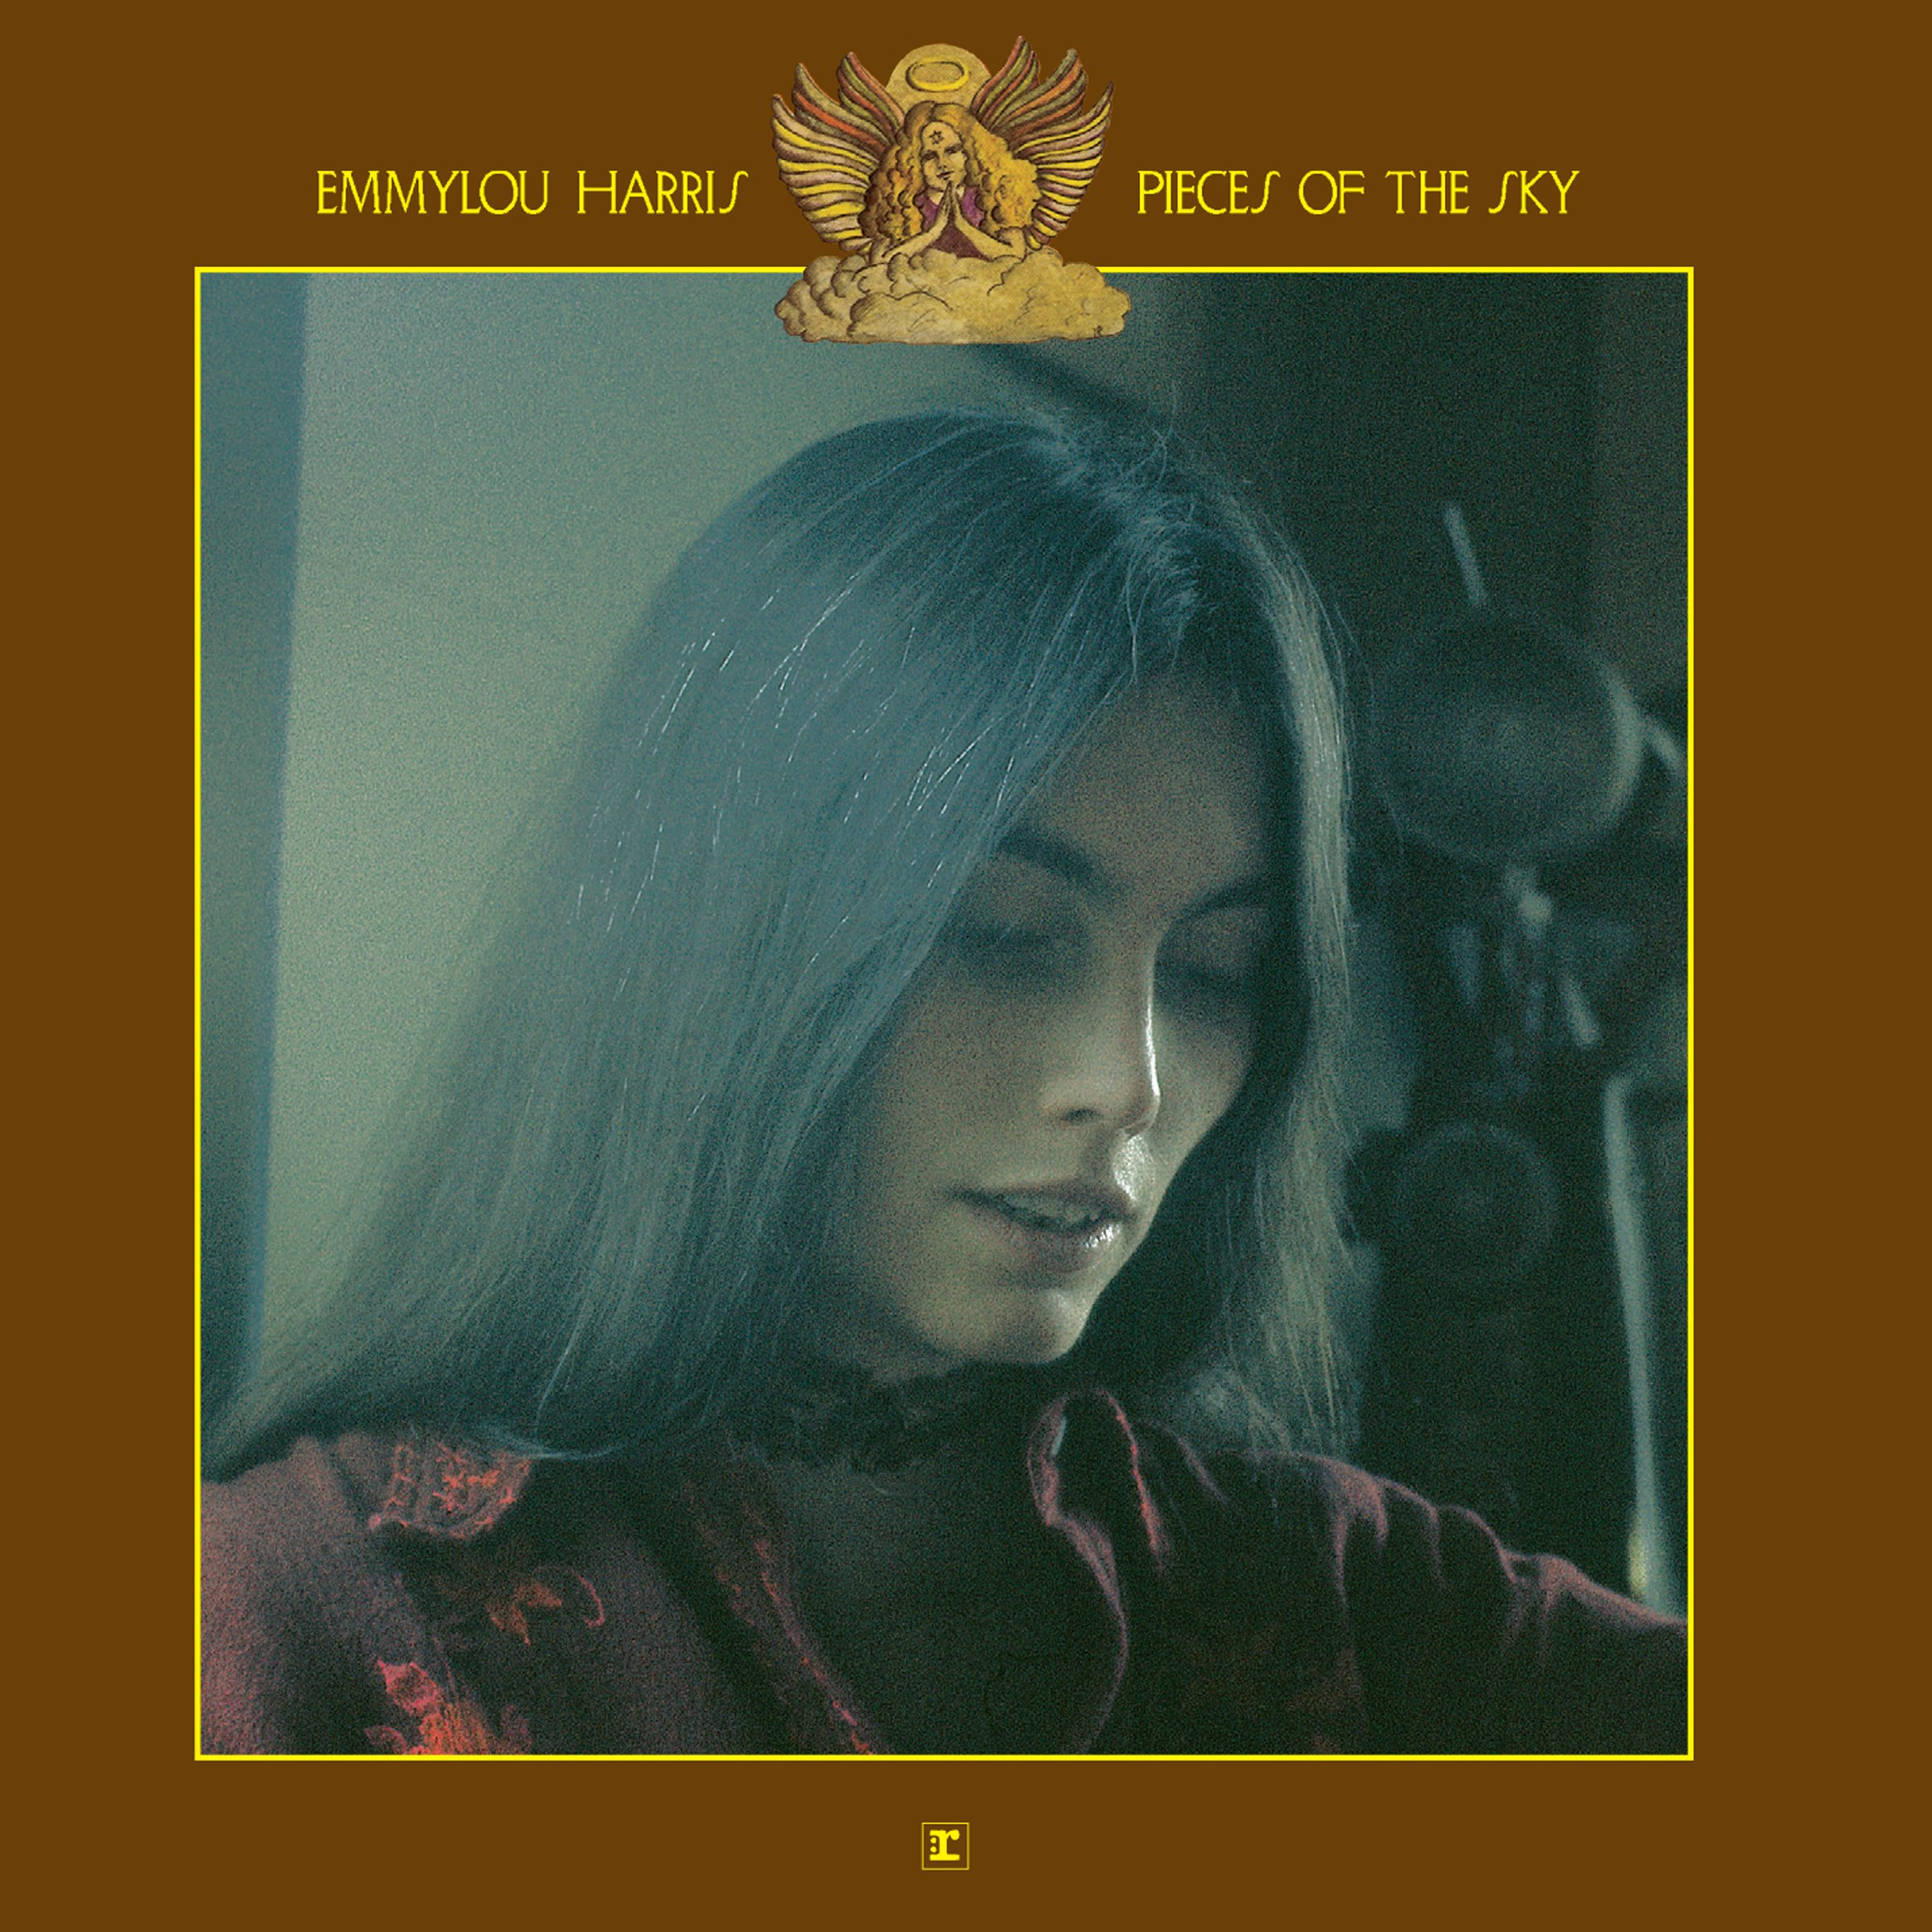 CD : Emmylou Harris - Pieces of the Sky (CD)